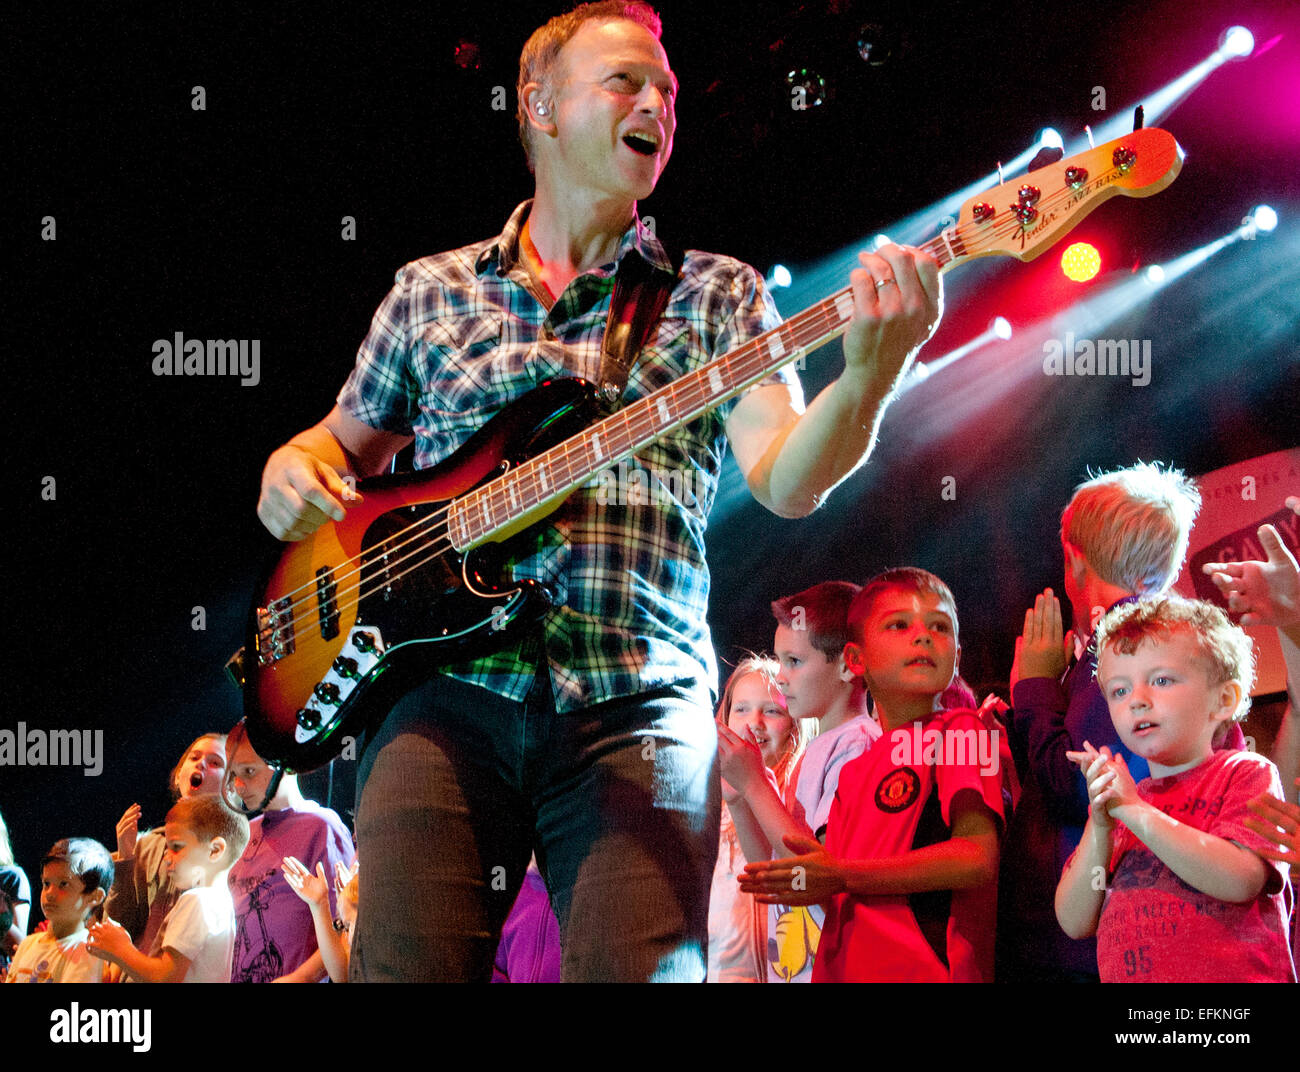 Actor Gary Sinise and the Lt. Dan Band perform for the troops at F.E. Warren Air Force Base August 17, 2014 in Cheyenne, - Stock Image